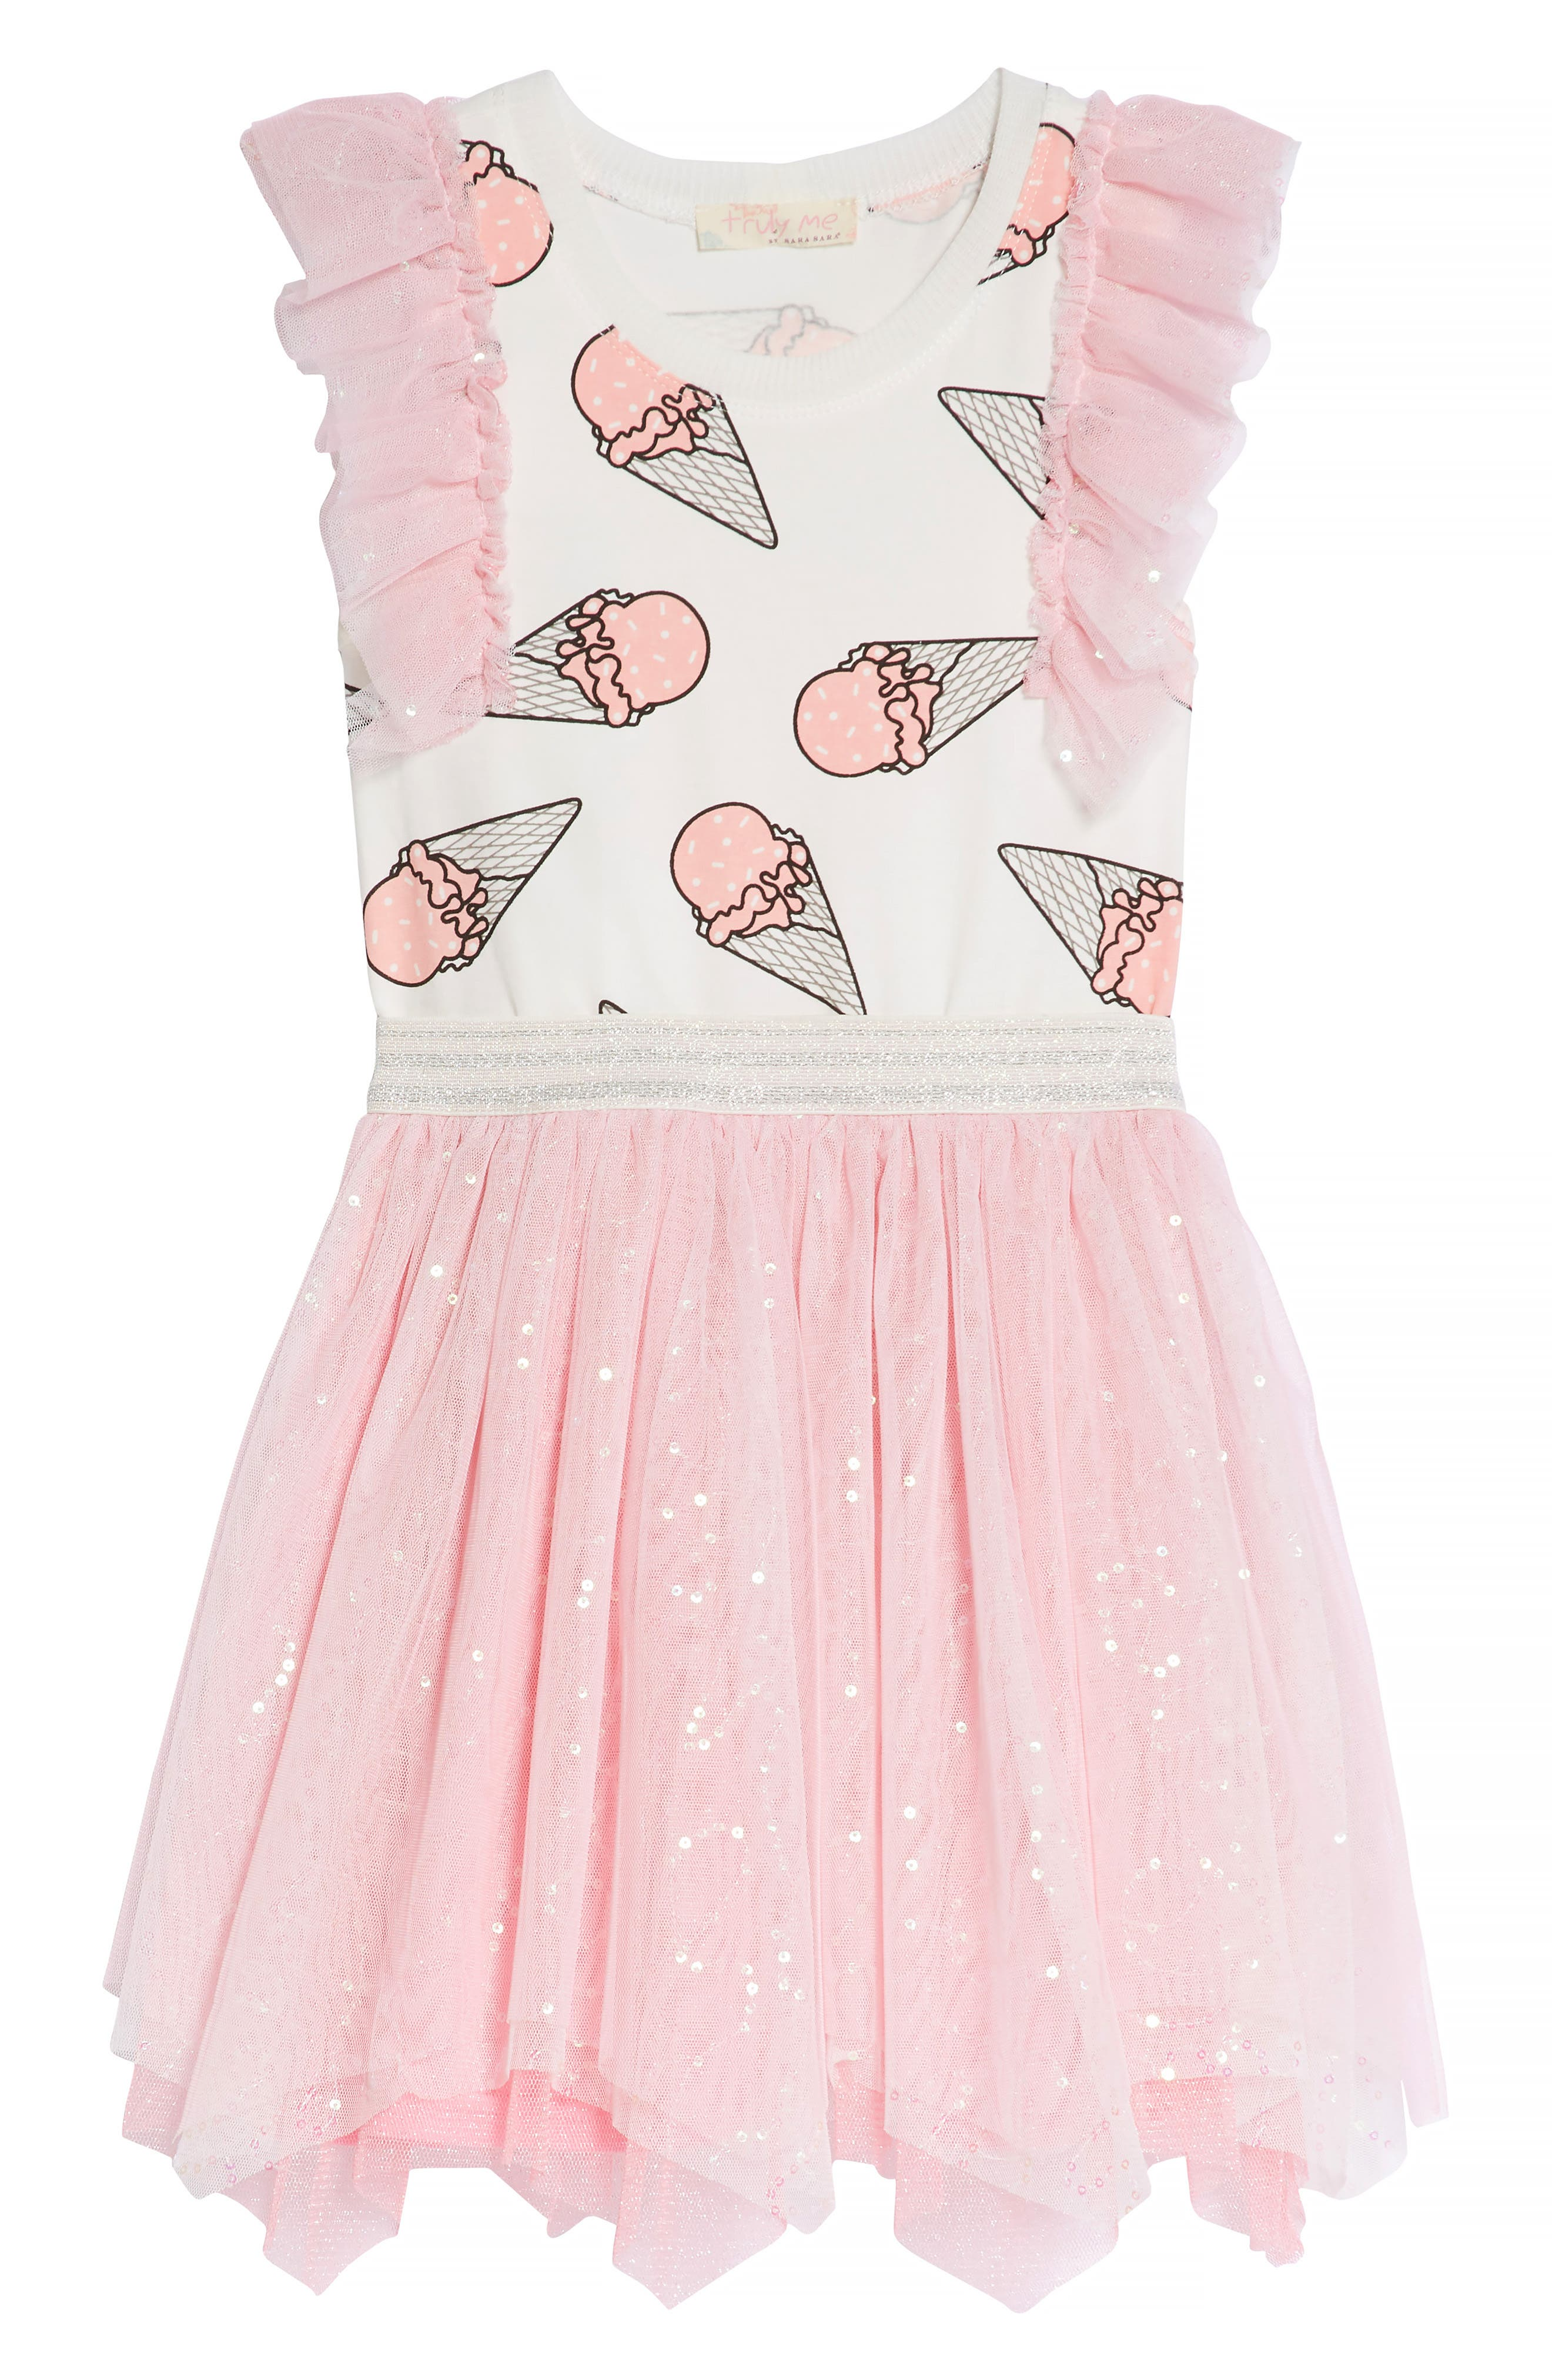 Main Image - Truly Me Ice Cream Print Dress (Toddler Girls & Little Girls)